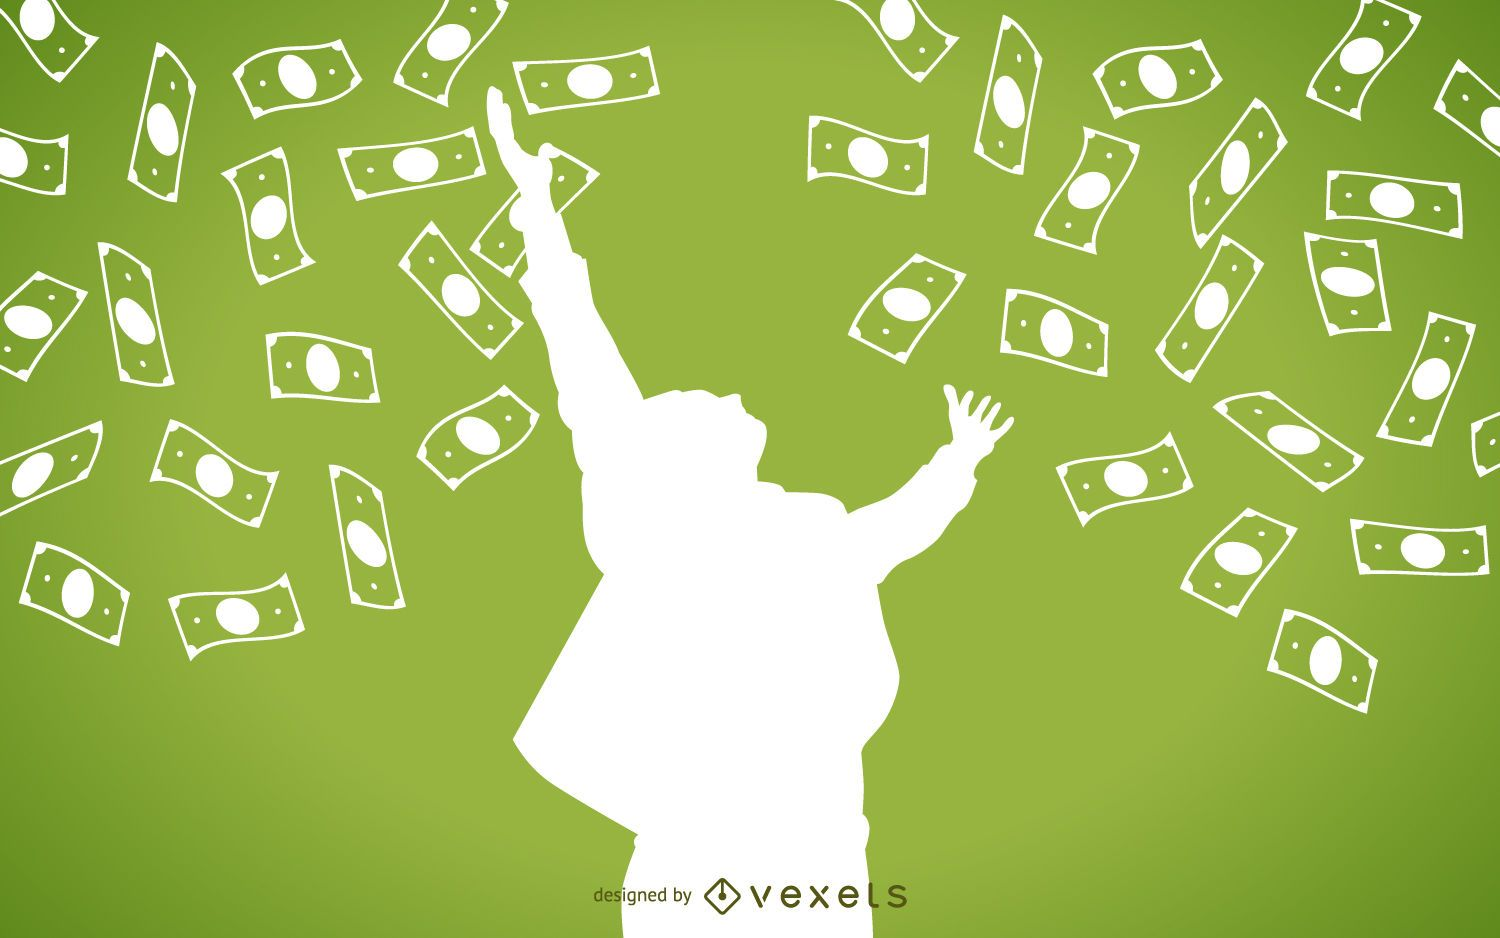 Falling cash with man silhouette